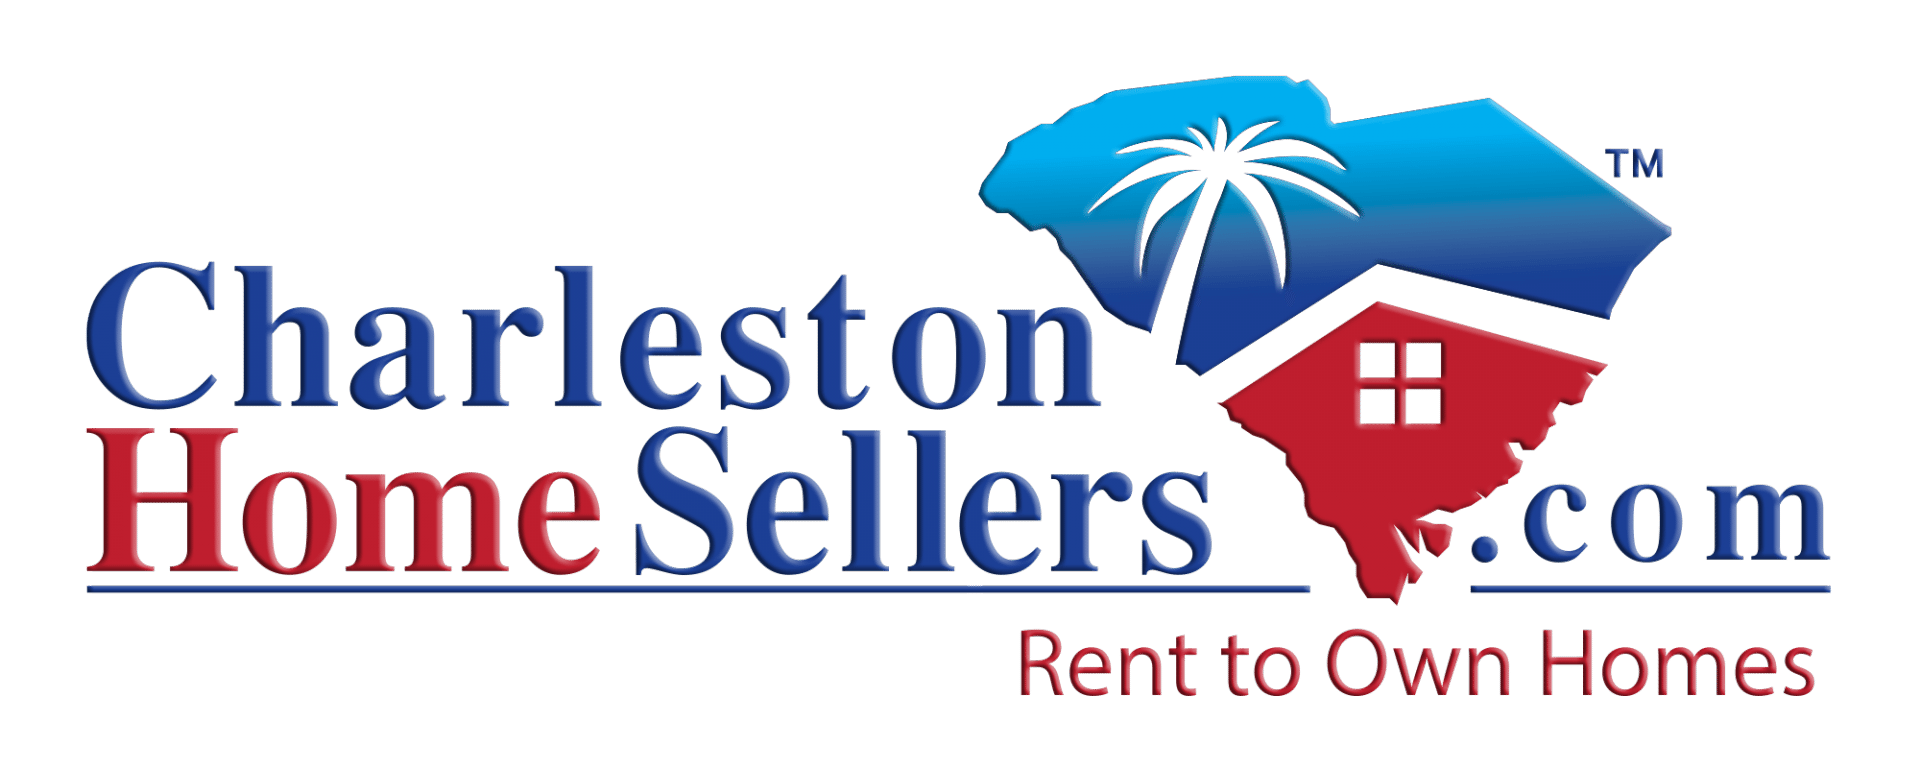 Rent to Own Homes in Charleston - Charleston Home Sellers